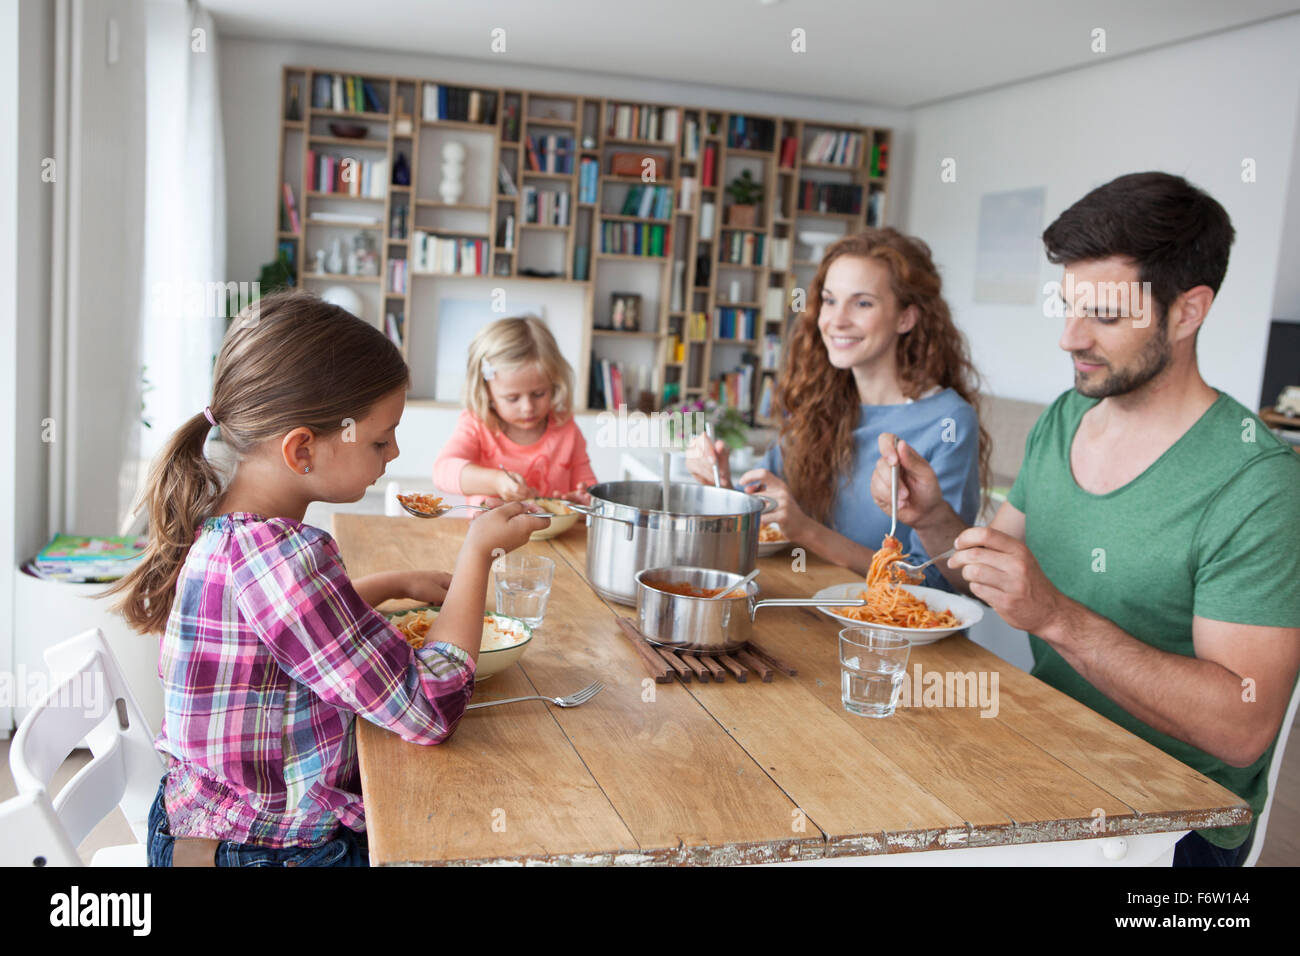 Little girl sitting at dining table with her parents and sister eating spaghetti - Stock Image